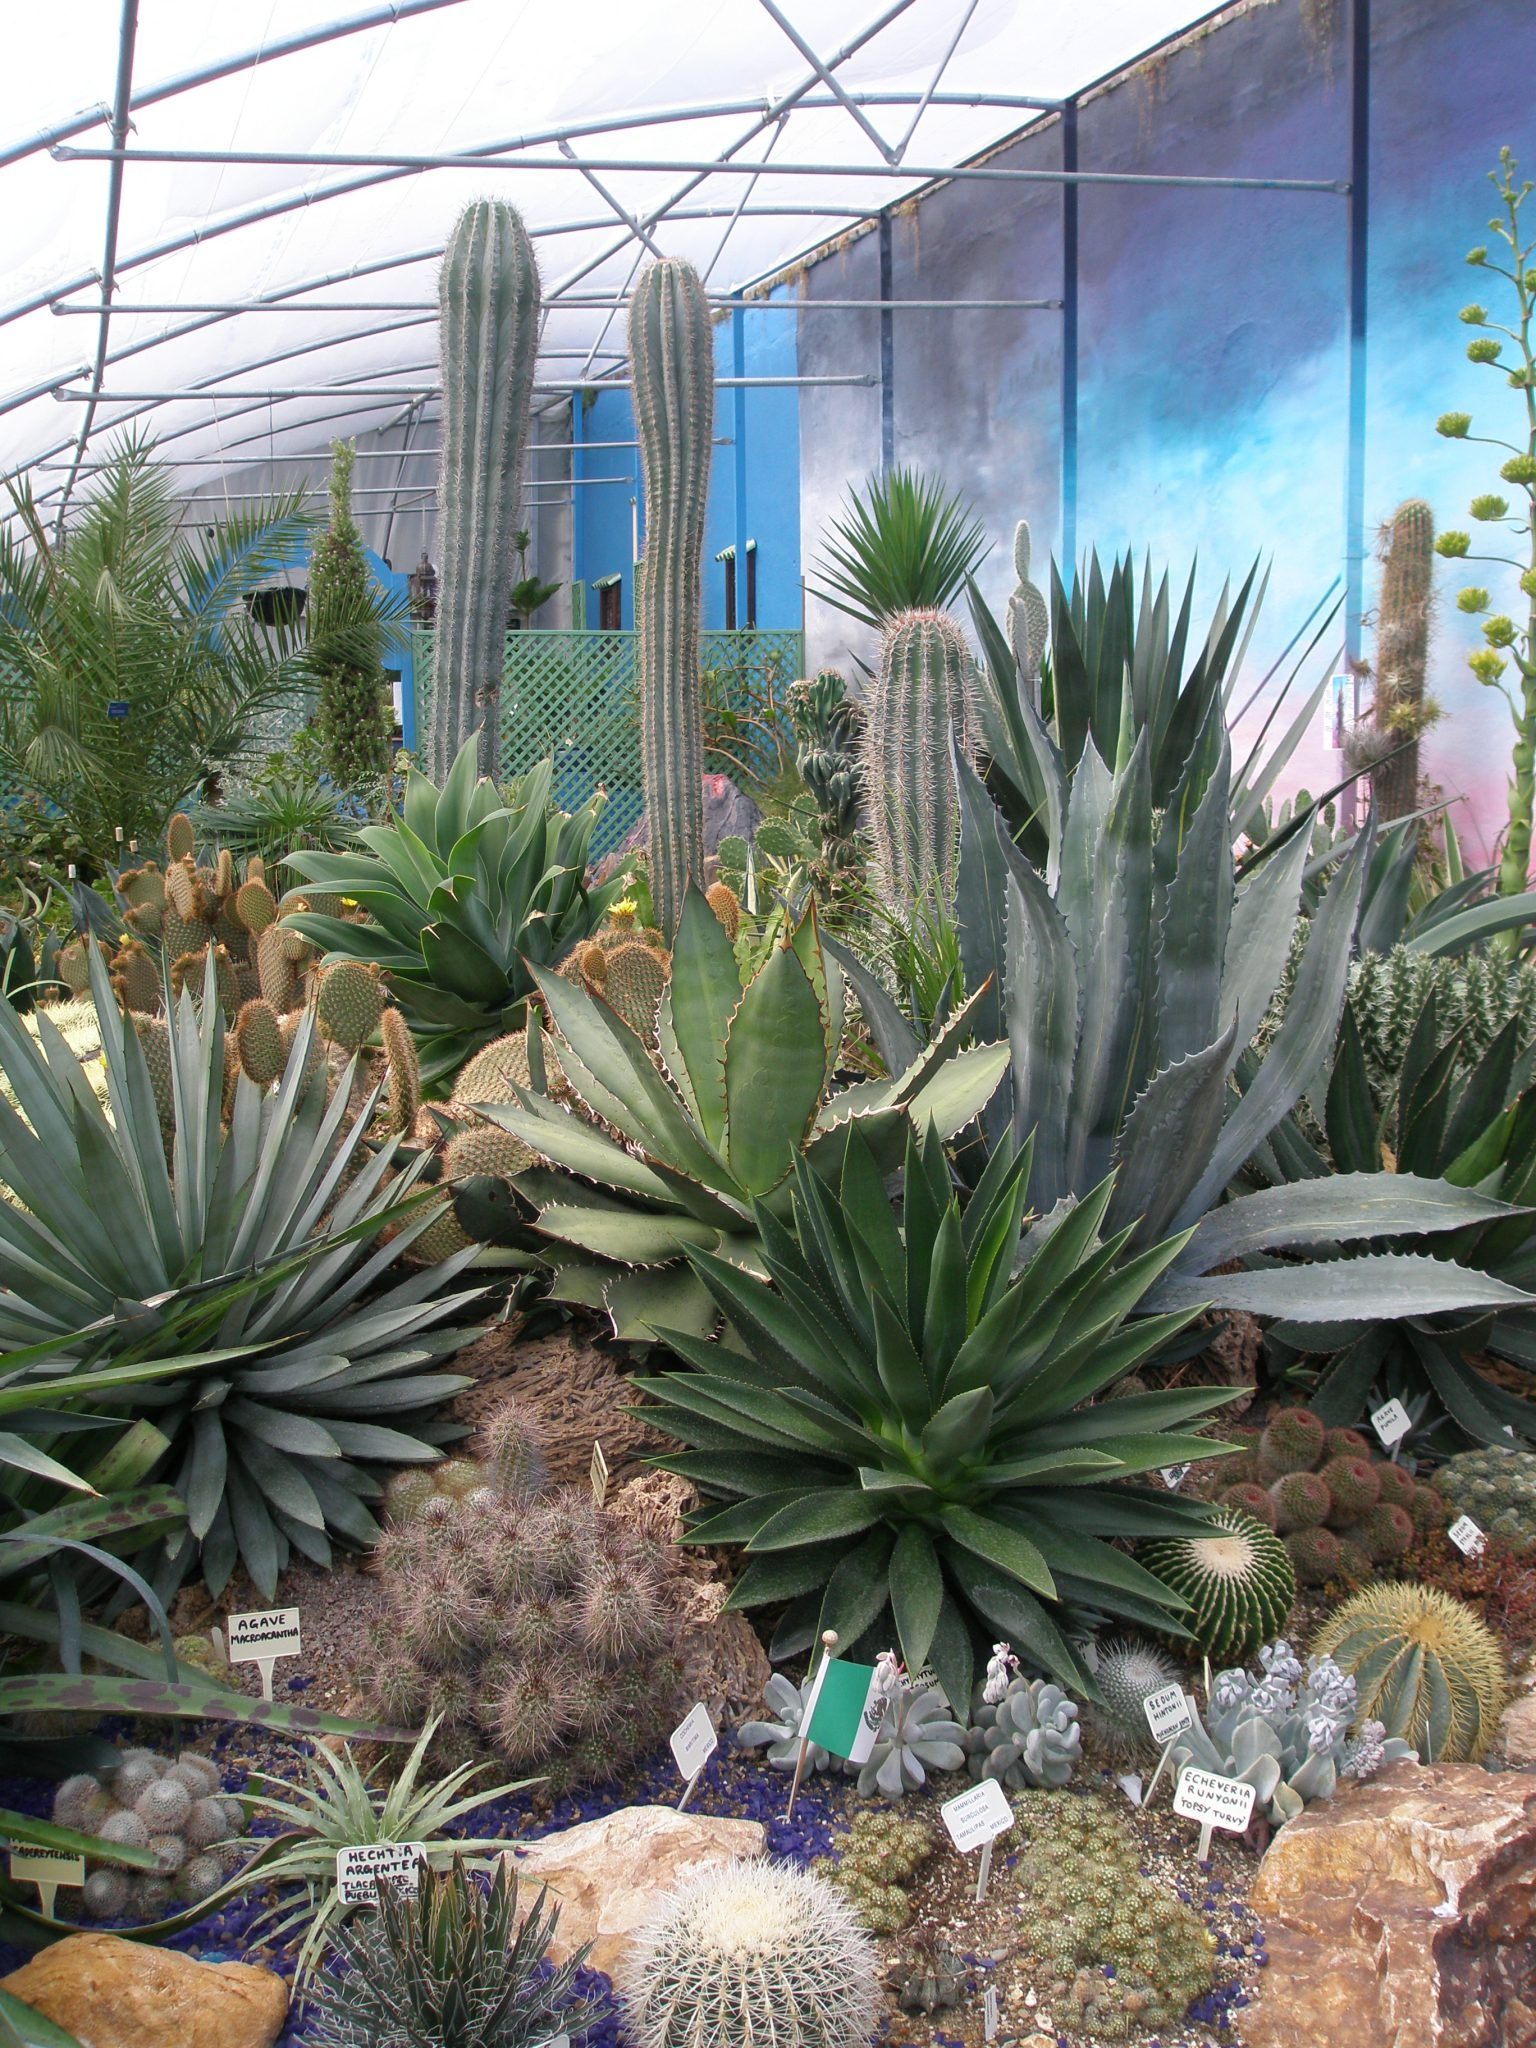 Another view of The Hot & Spikey Greenhouse